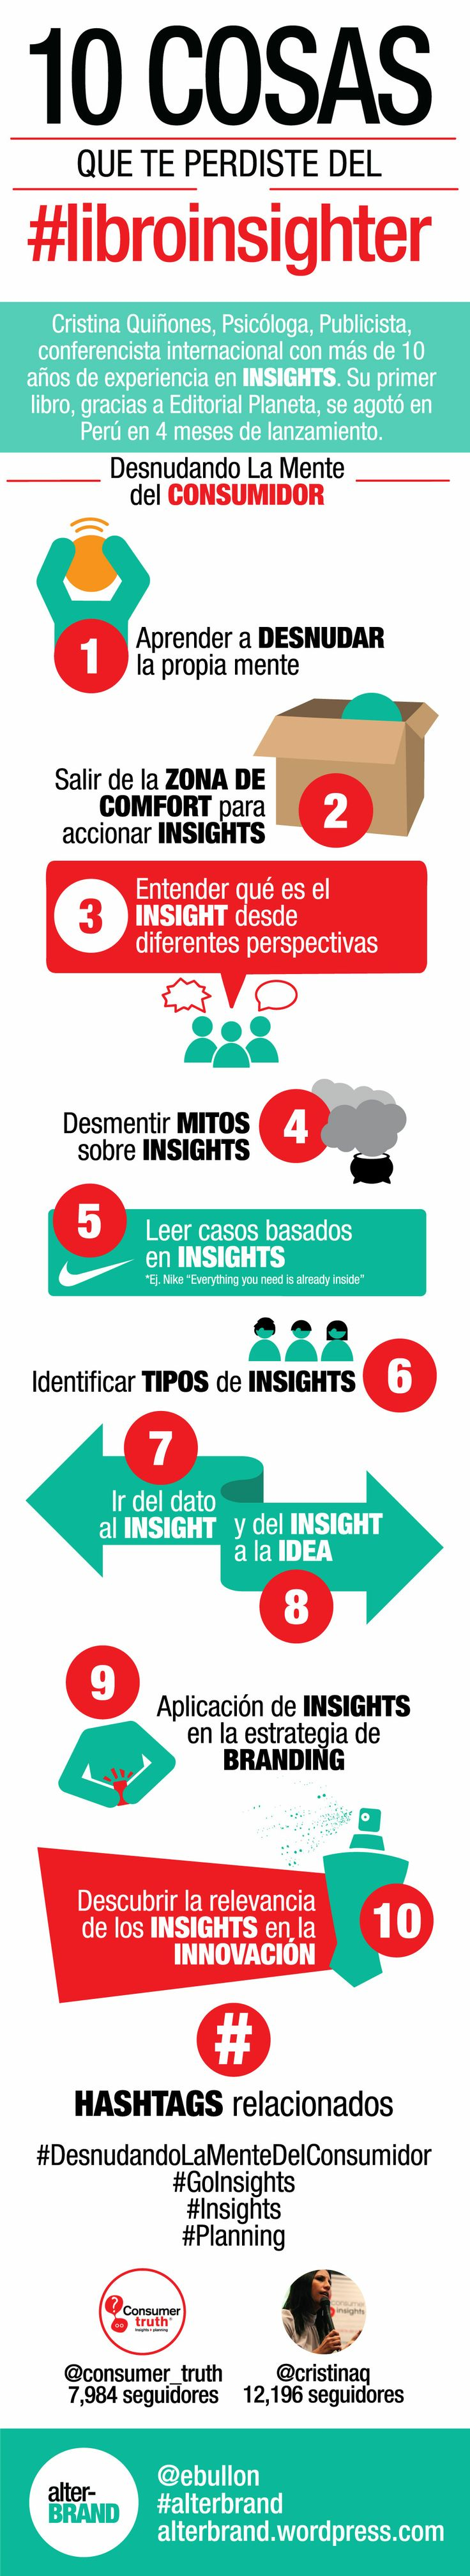 "10 Datos del libro Insighter ""Desnudando la mente del Consumidor"" - MarketerosLATAM"